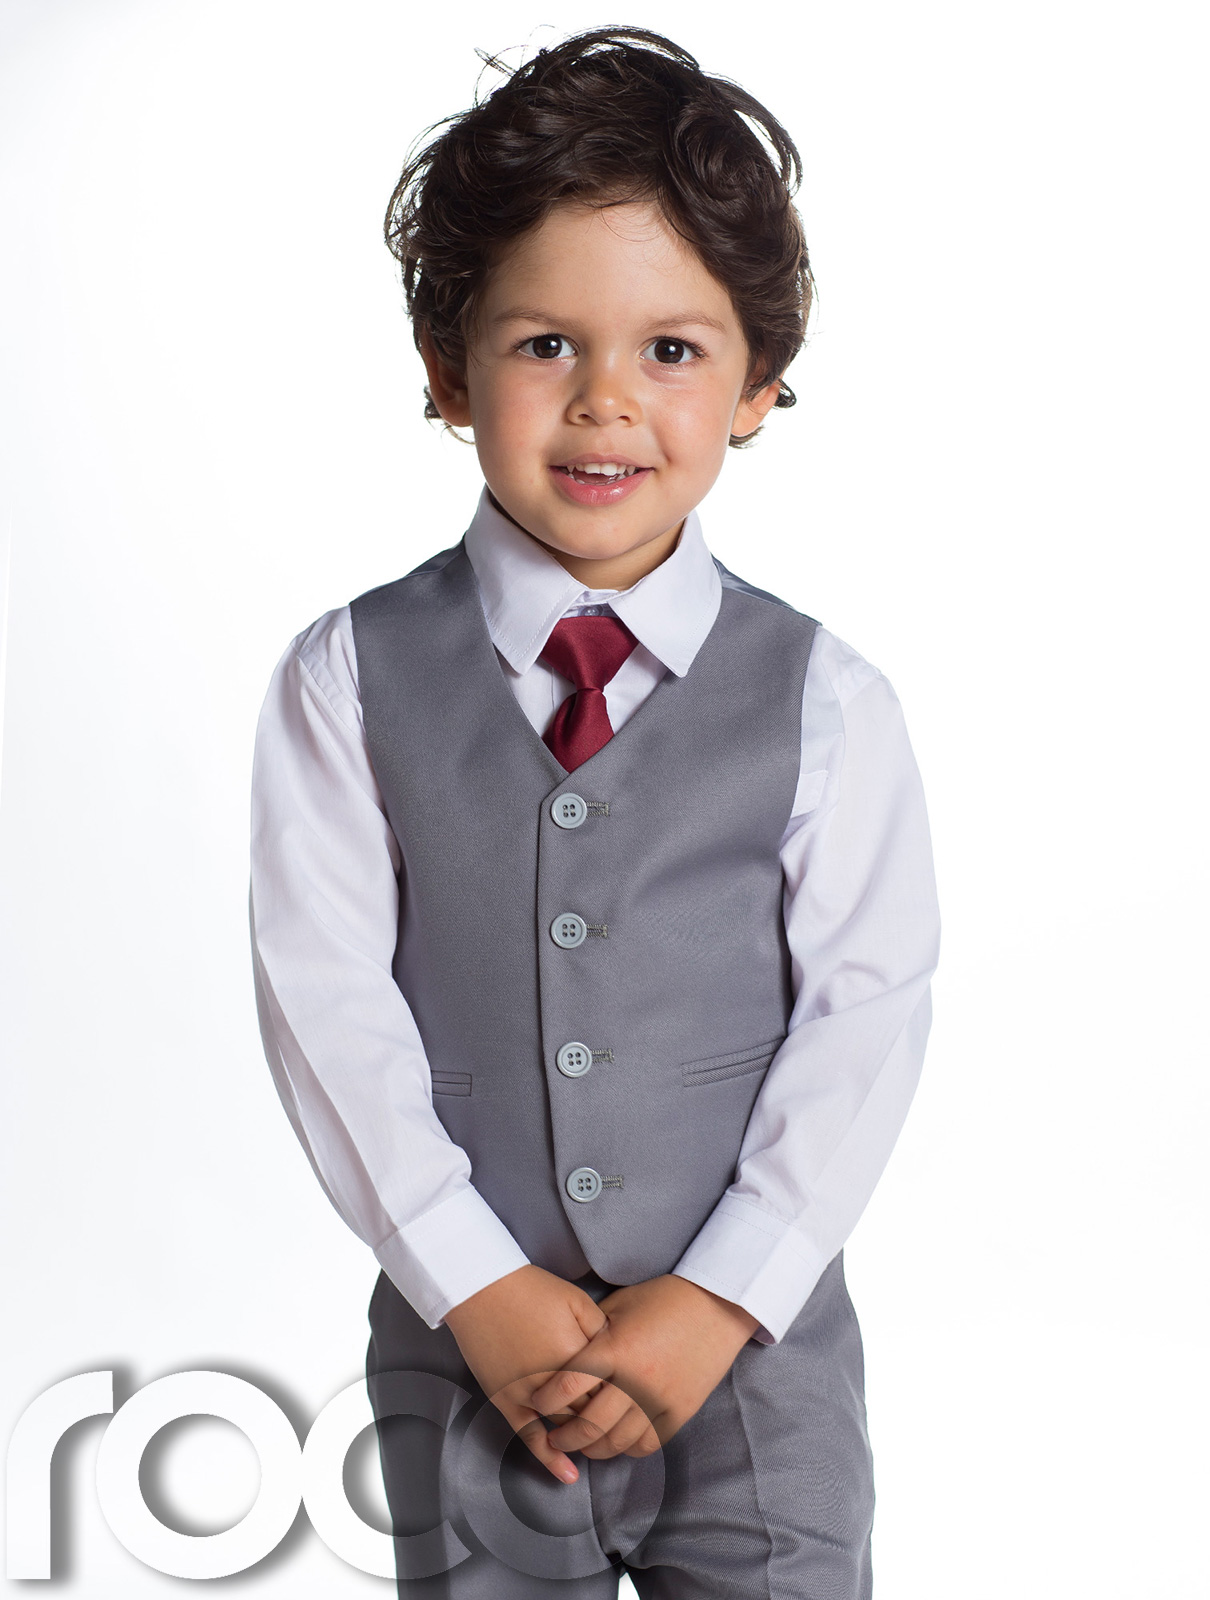 Lauren Madison has christening suits for baby boys that will have your little one looking elegant for that once in a lifetime event. When it's time to dress up your little boy, show him the choices in boys' dress suits.